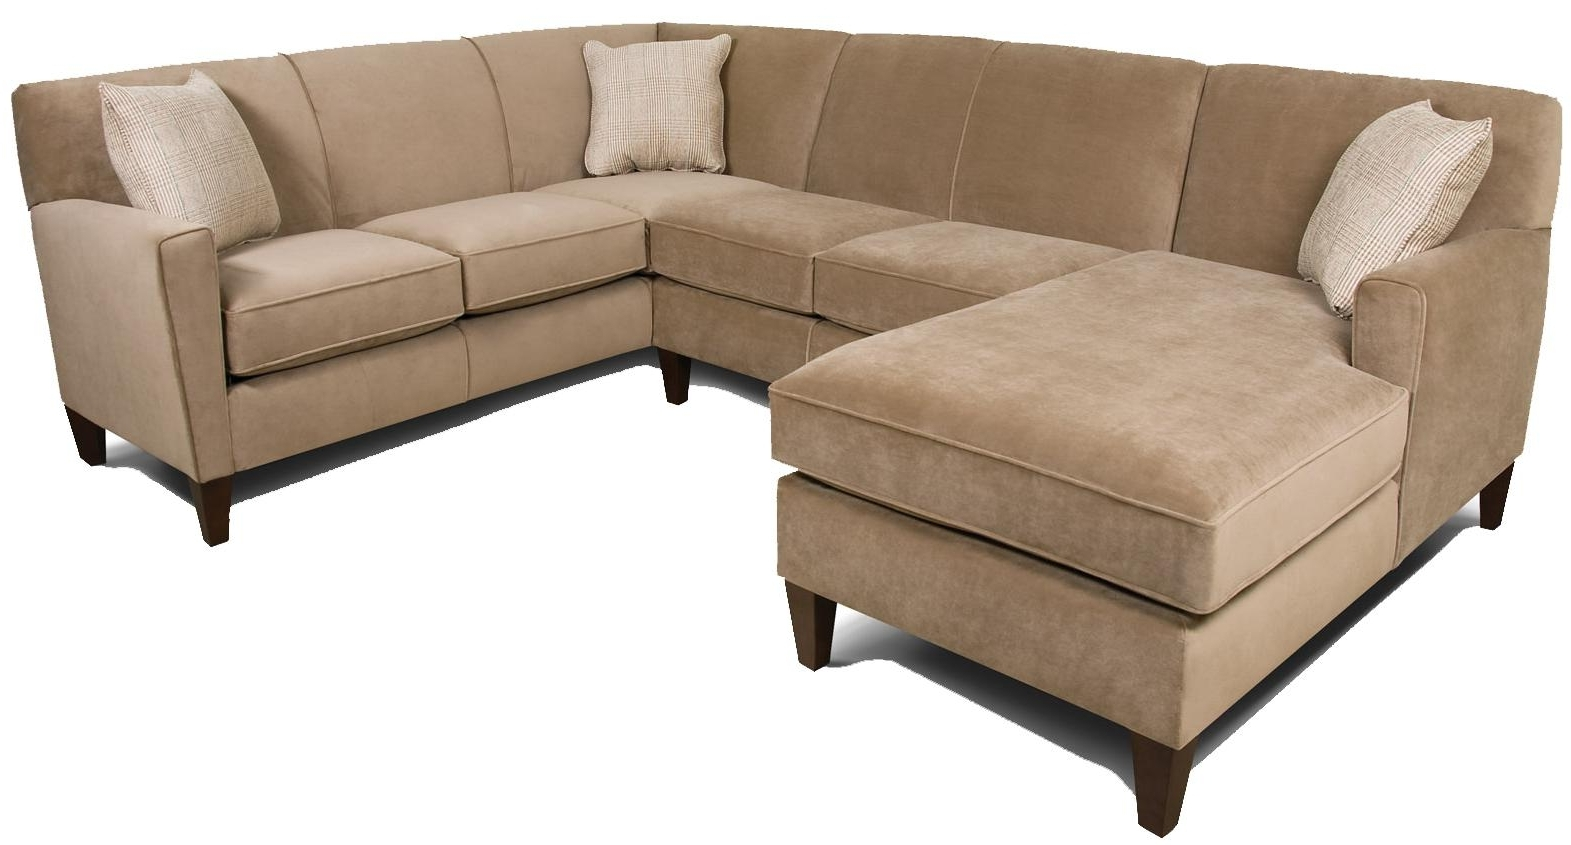 Popular England Collegedale Contemporary 3 Piece Sectional Sofa With Laf Regarding England Sectional Sofas (View 14 of 20)